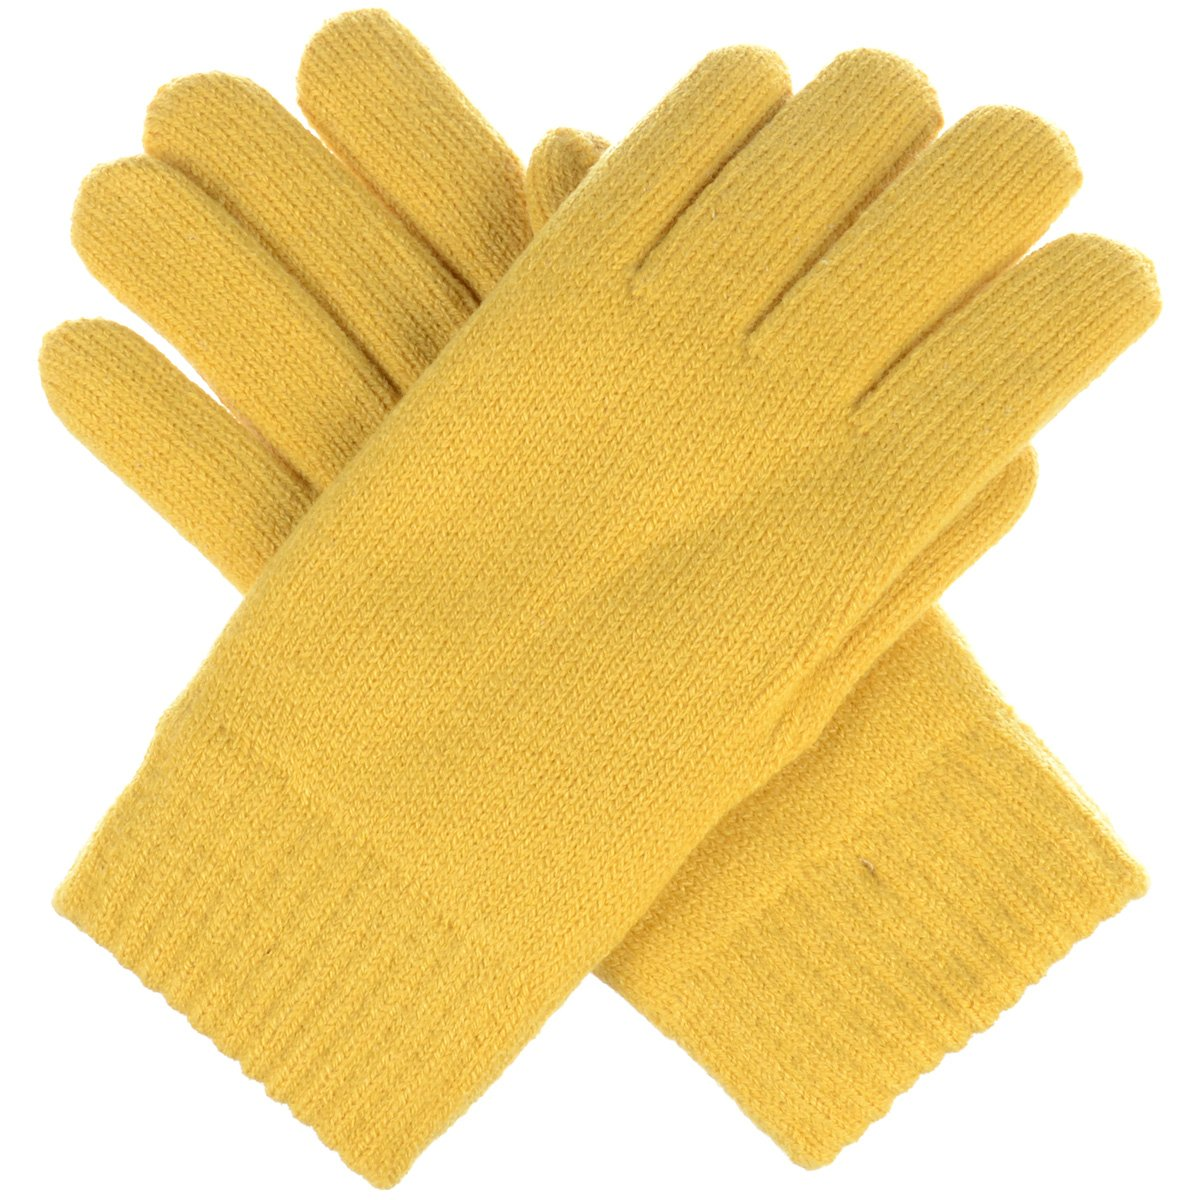 BYOS Winter Womens Toasty Warm Plush Fleece Lined Knit Gloves, 14 Solid Colors (Yellow)